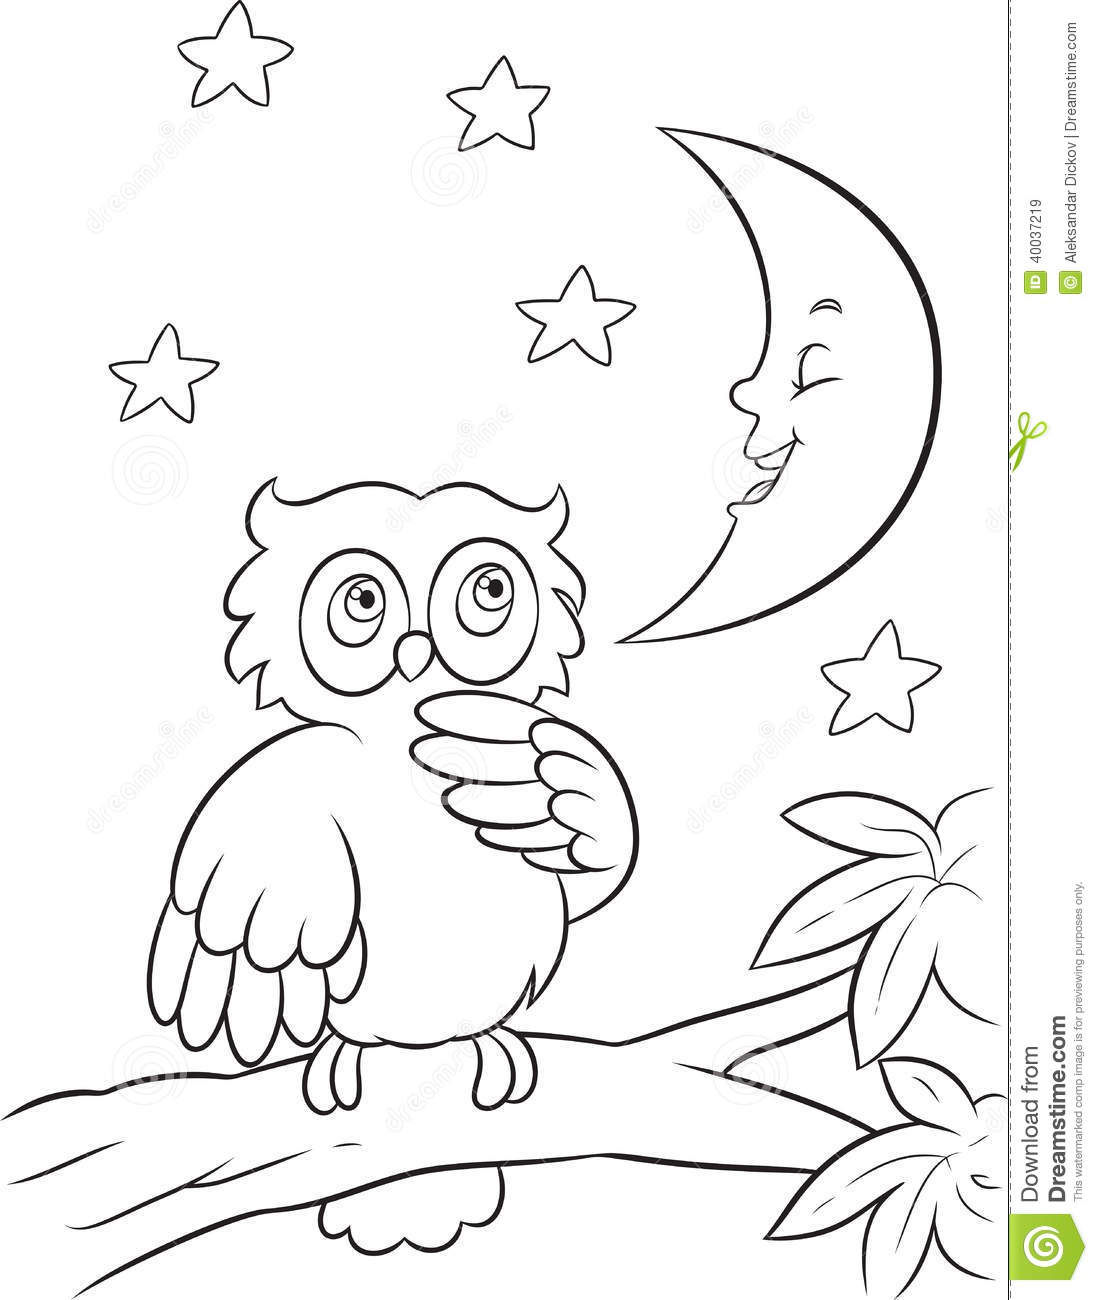 Owl Coloring Page Stock Vector